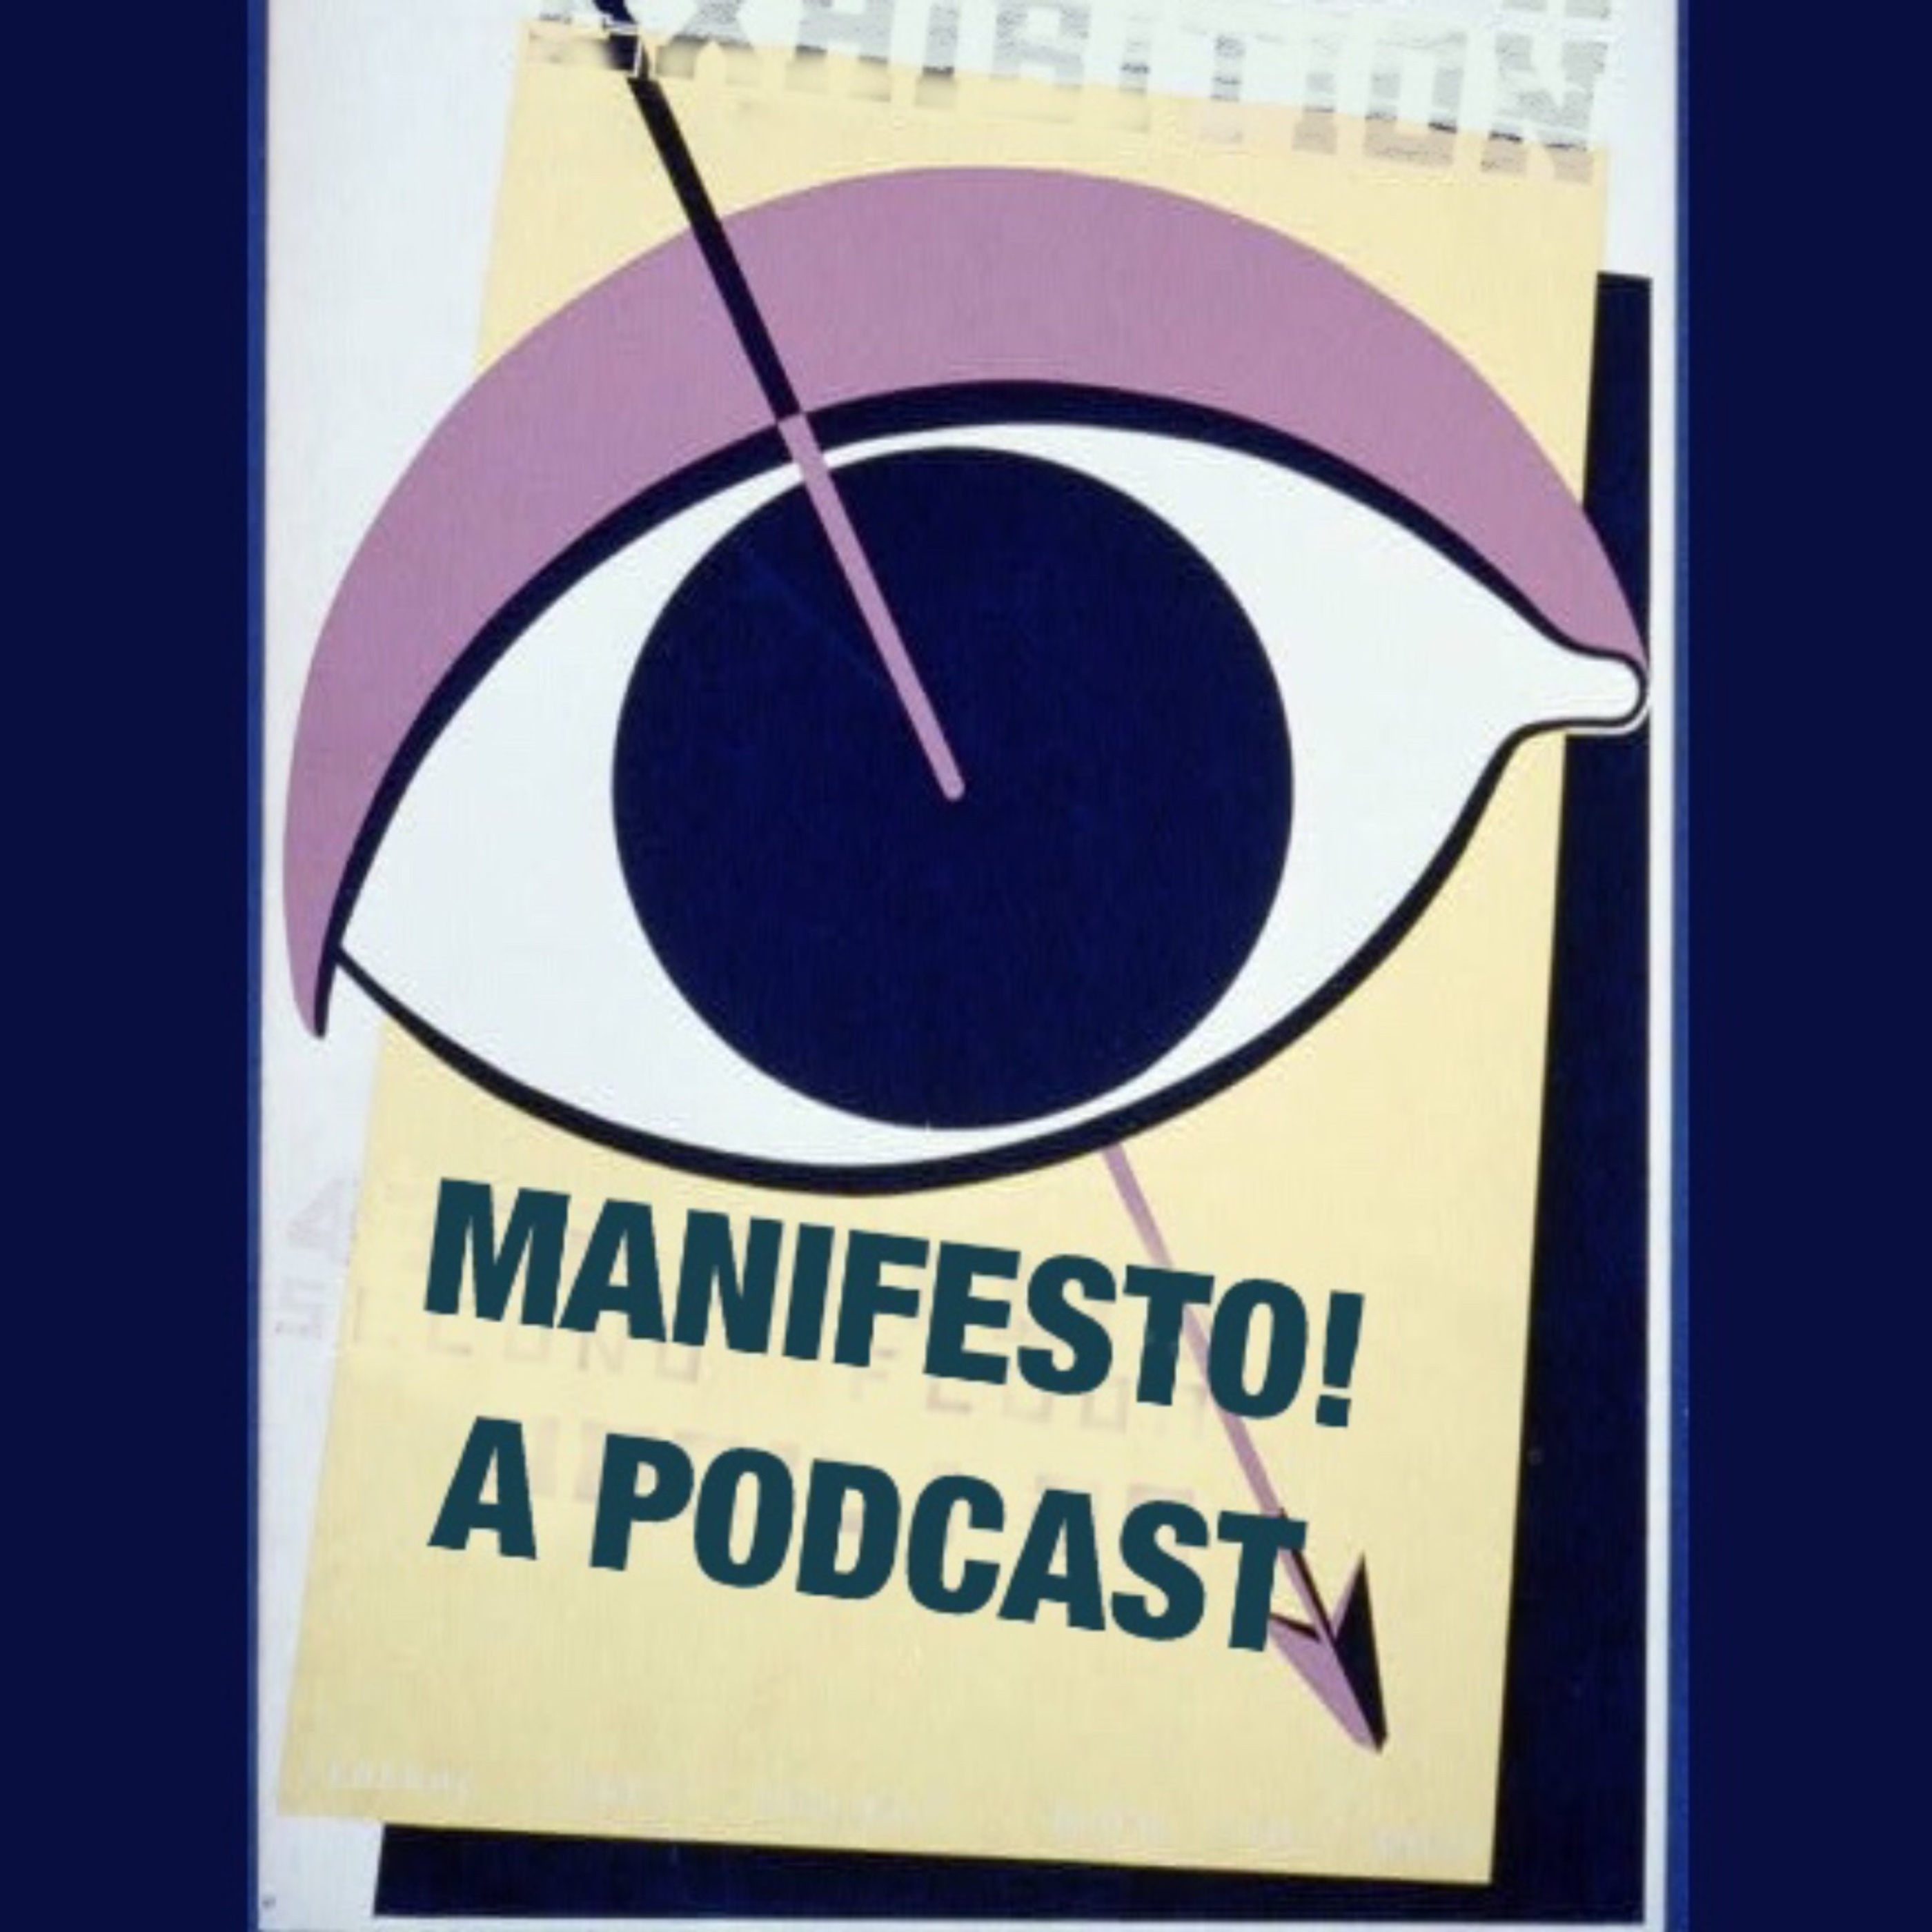 Episode 28: They Will Eat the CIA Men First